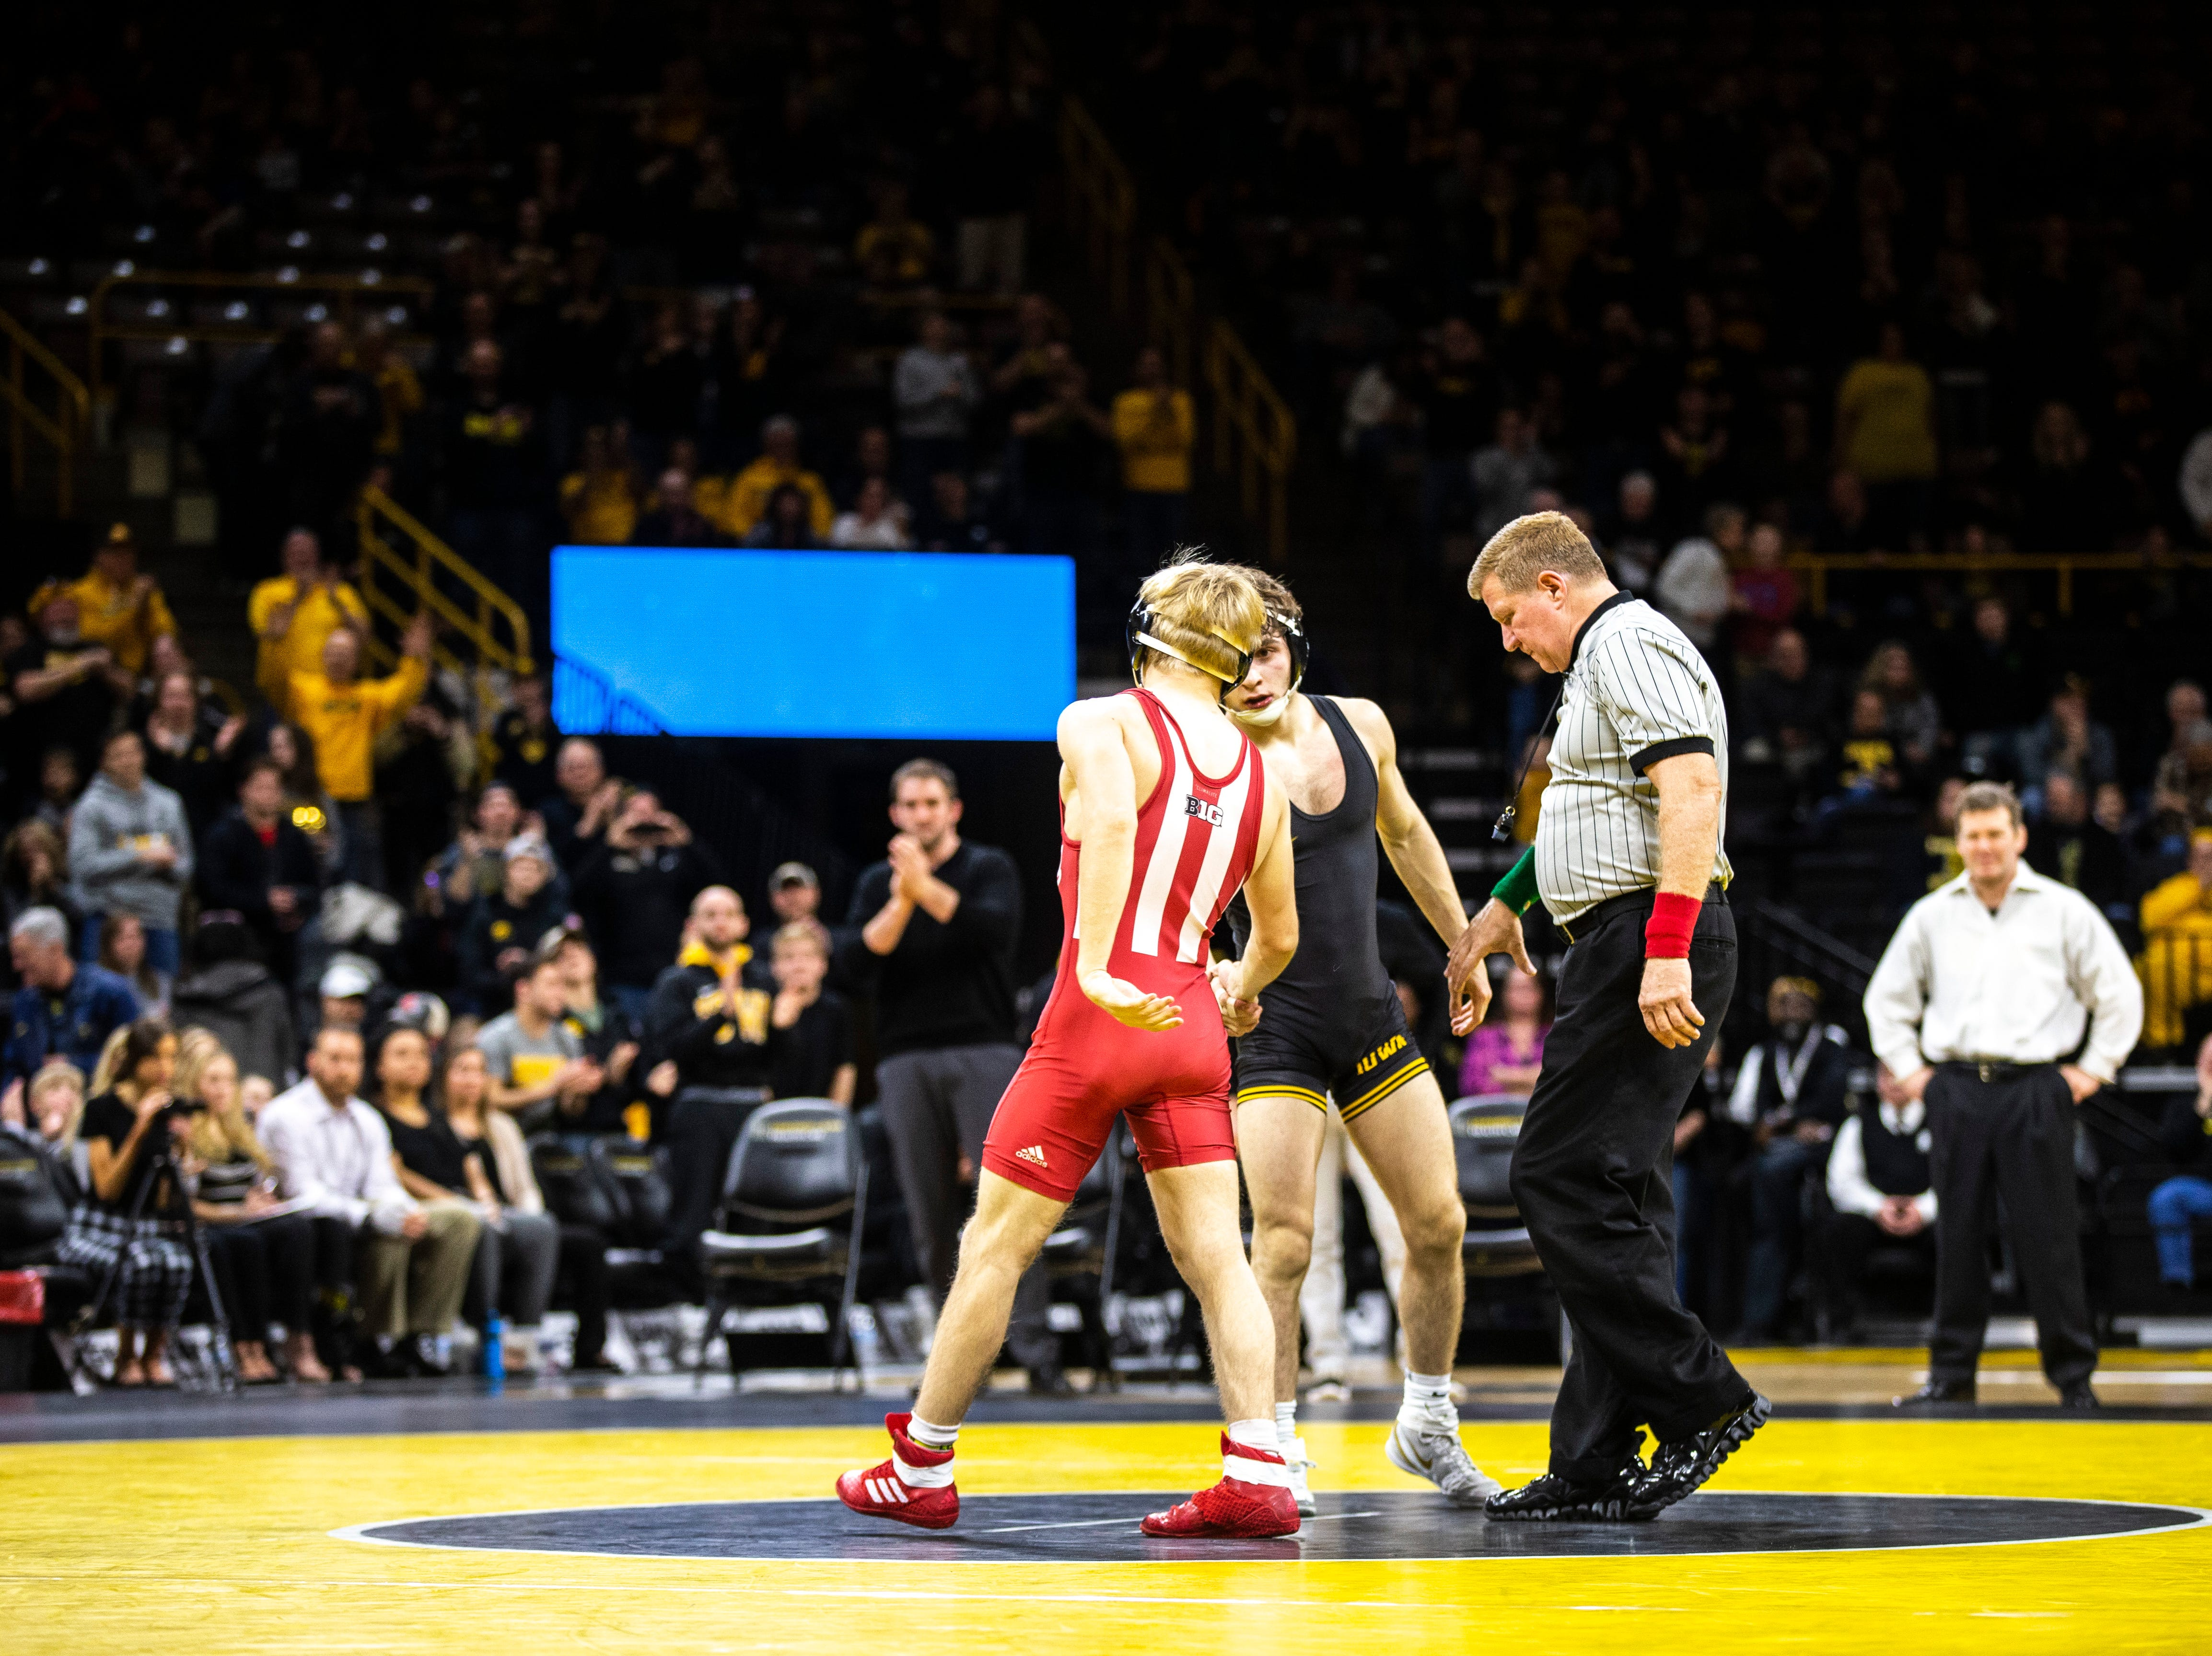 Iowa's Austin DeSanto shakes hands with Indiana's Paul Konrath at 133 during a NCAA Big Ten Conference wrestling dual on Friday, Feb. 15, 2019 at Carver-Hawkeye Arena in Iowa City, Iowa.